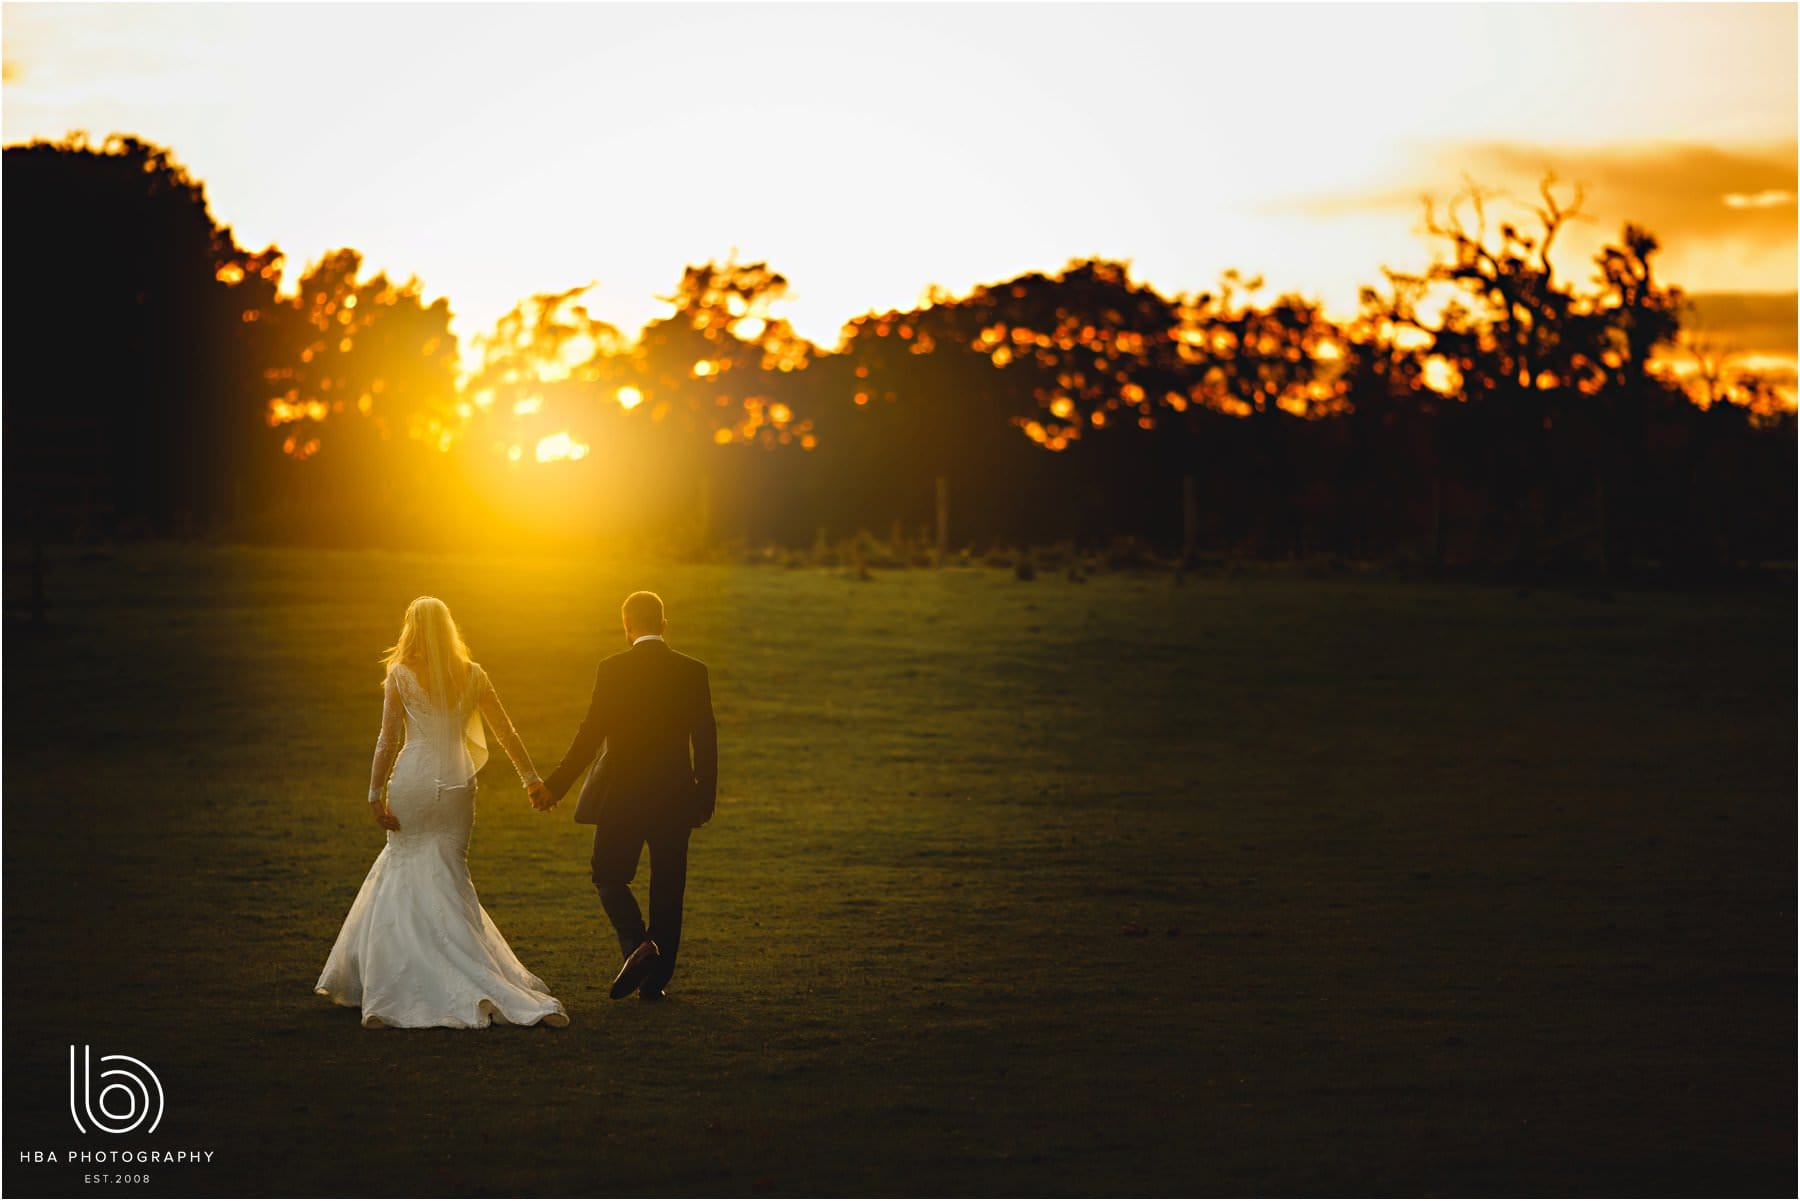 the bride & groom walking on the meadow at sunset